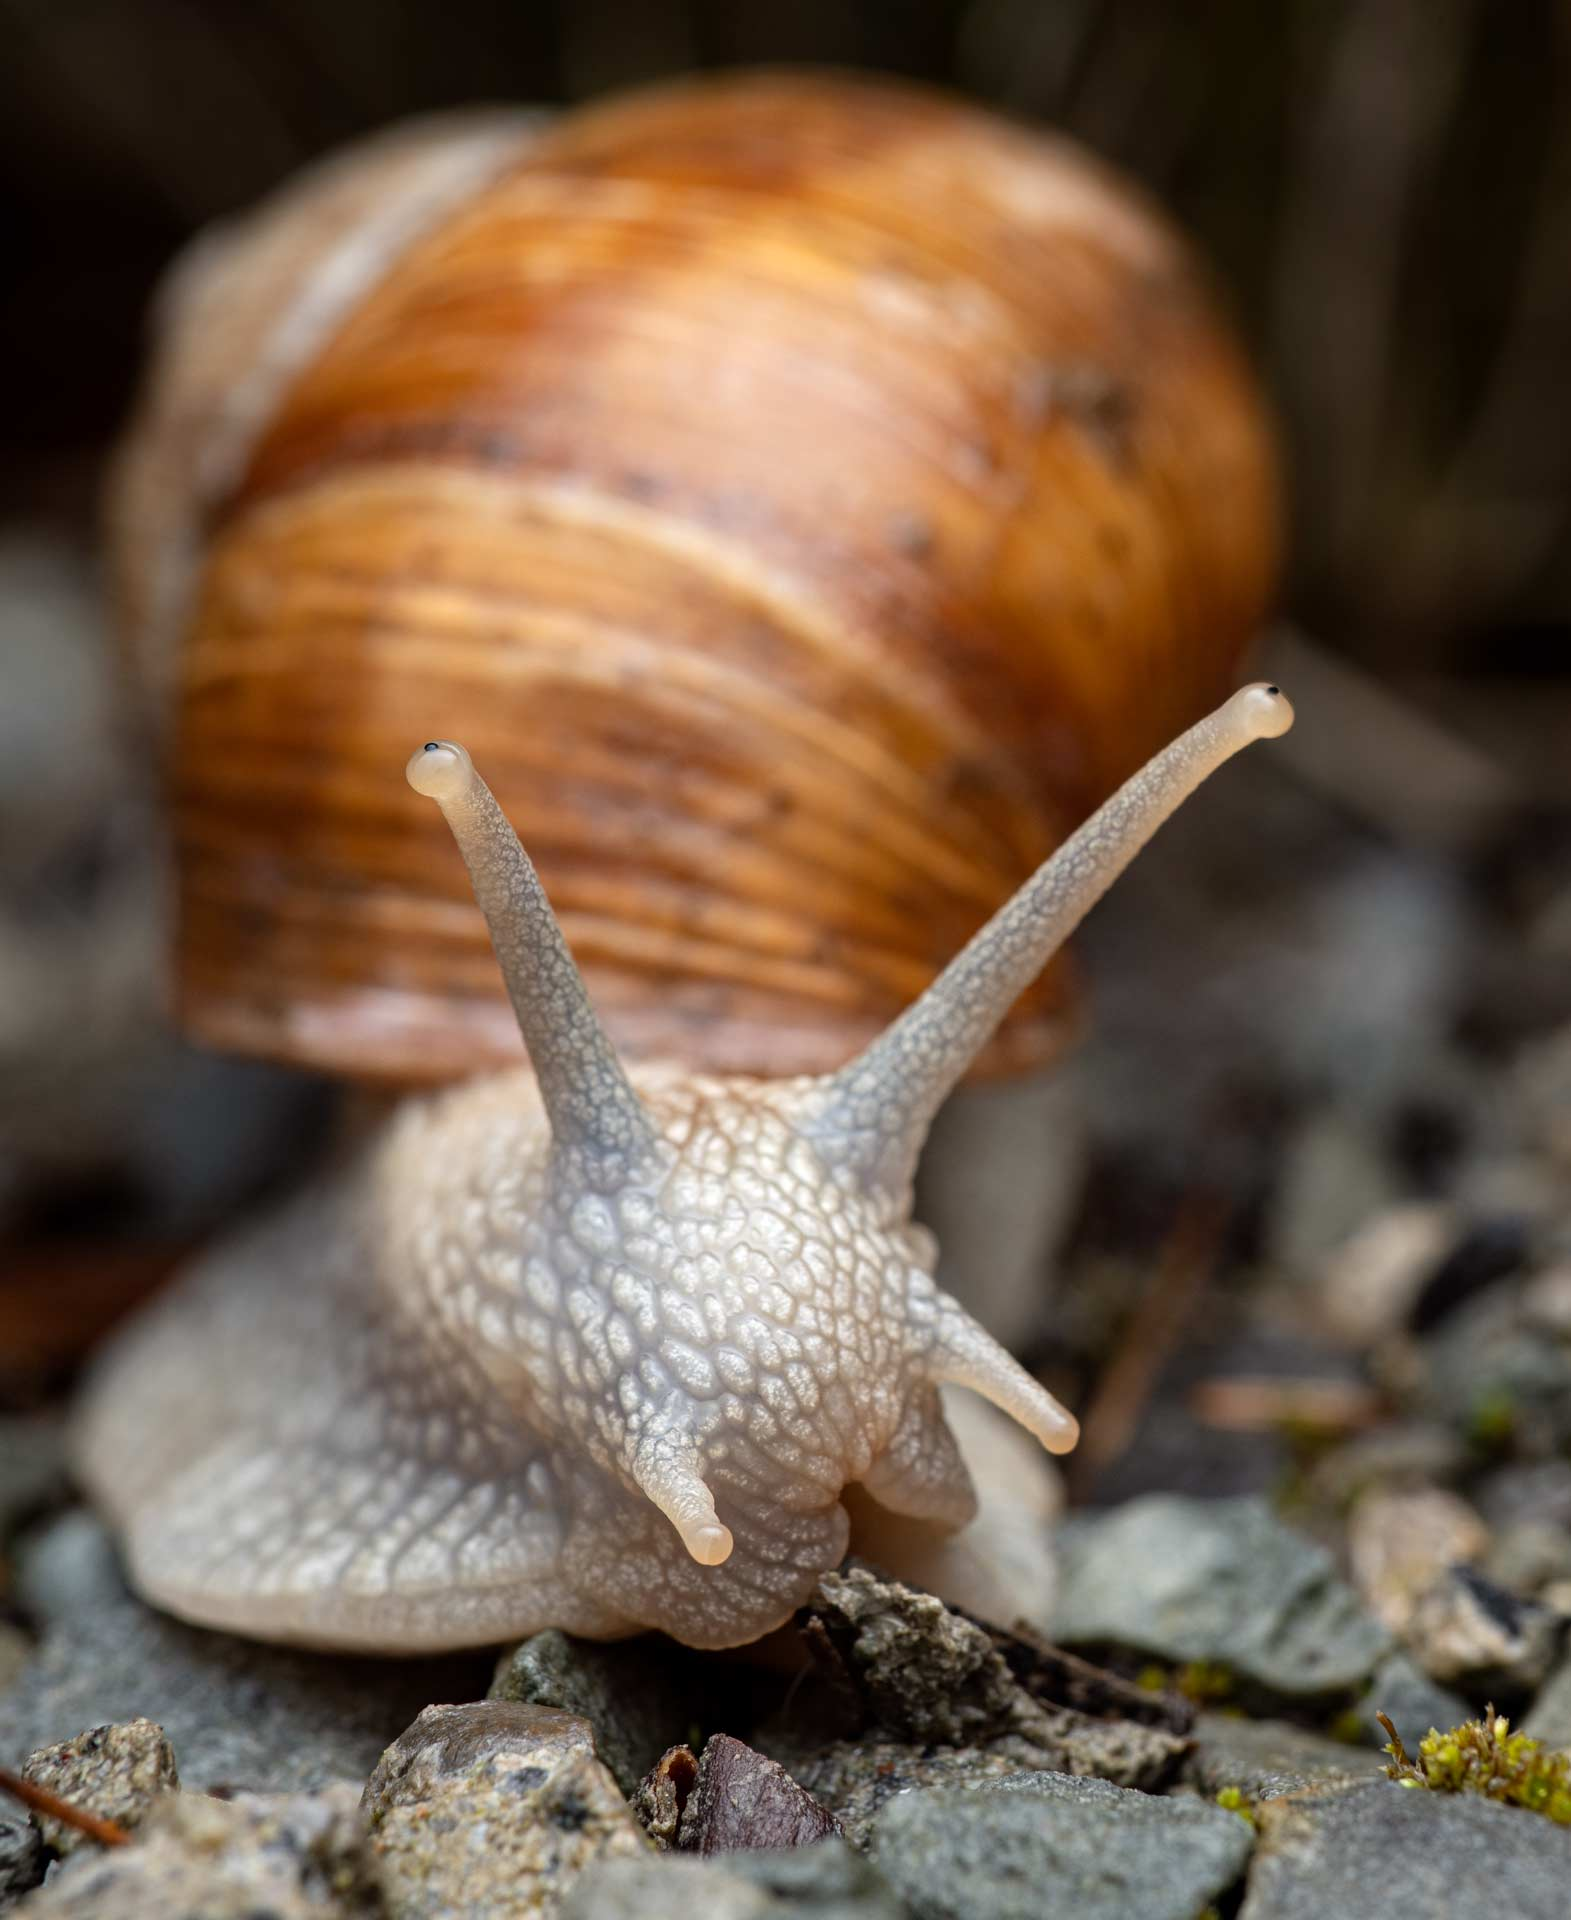 Roman snail photographed in Lucerne, Switzerland